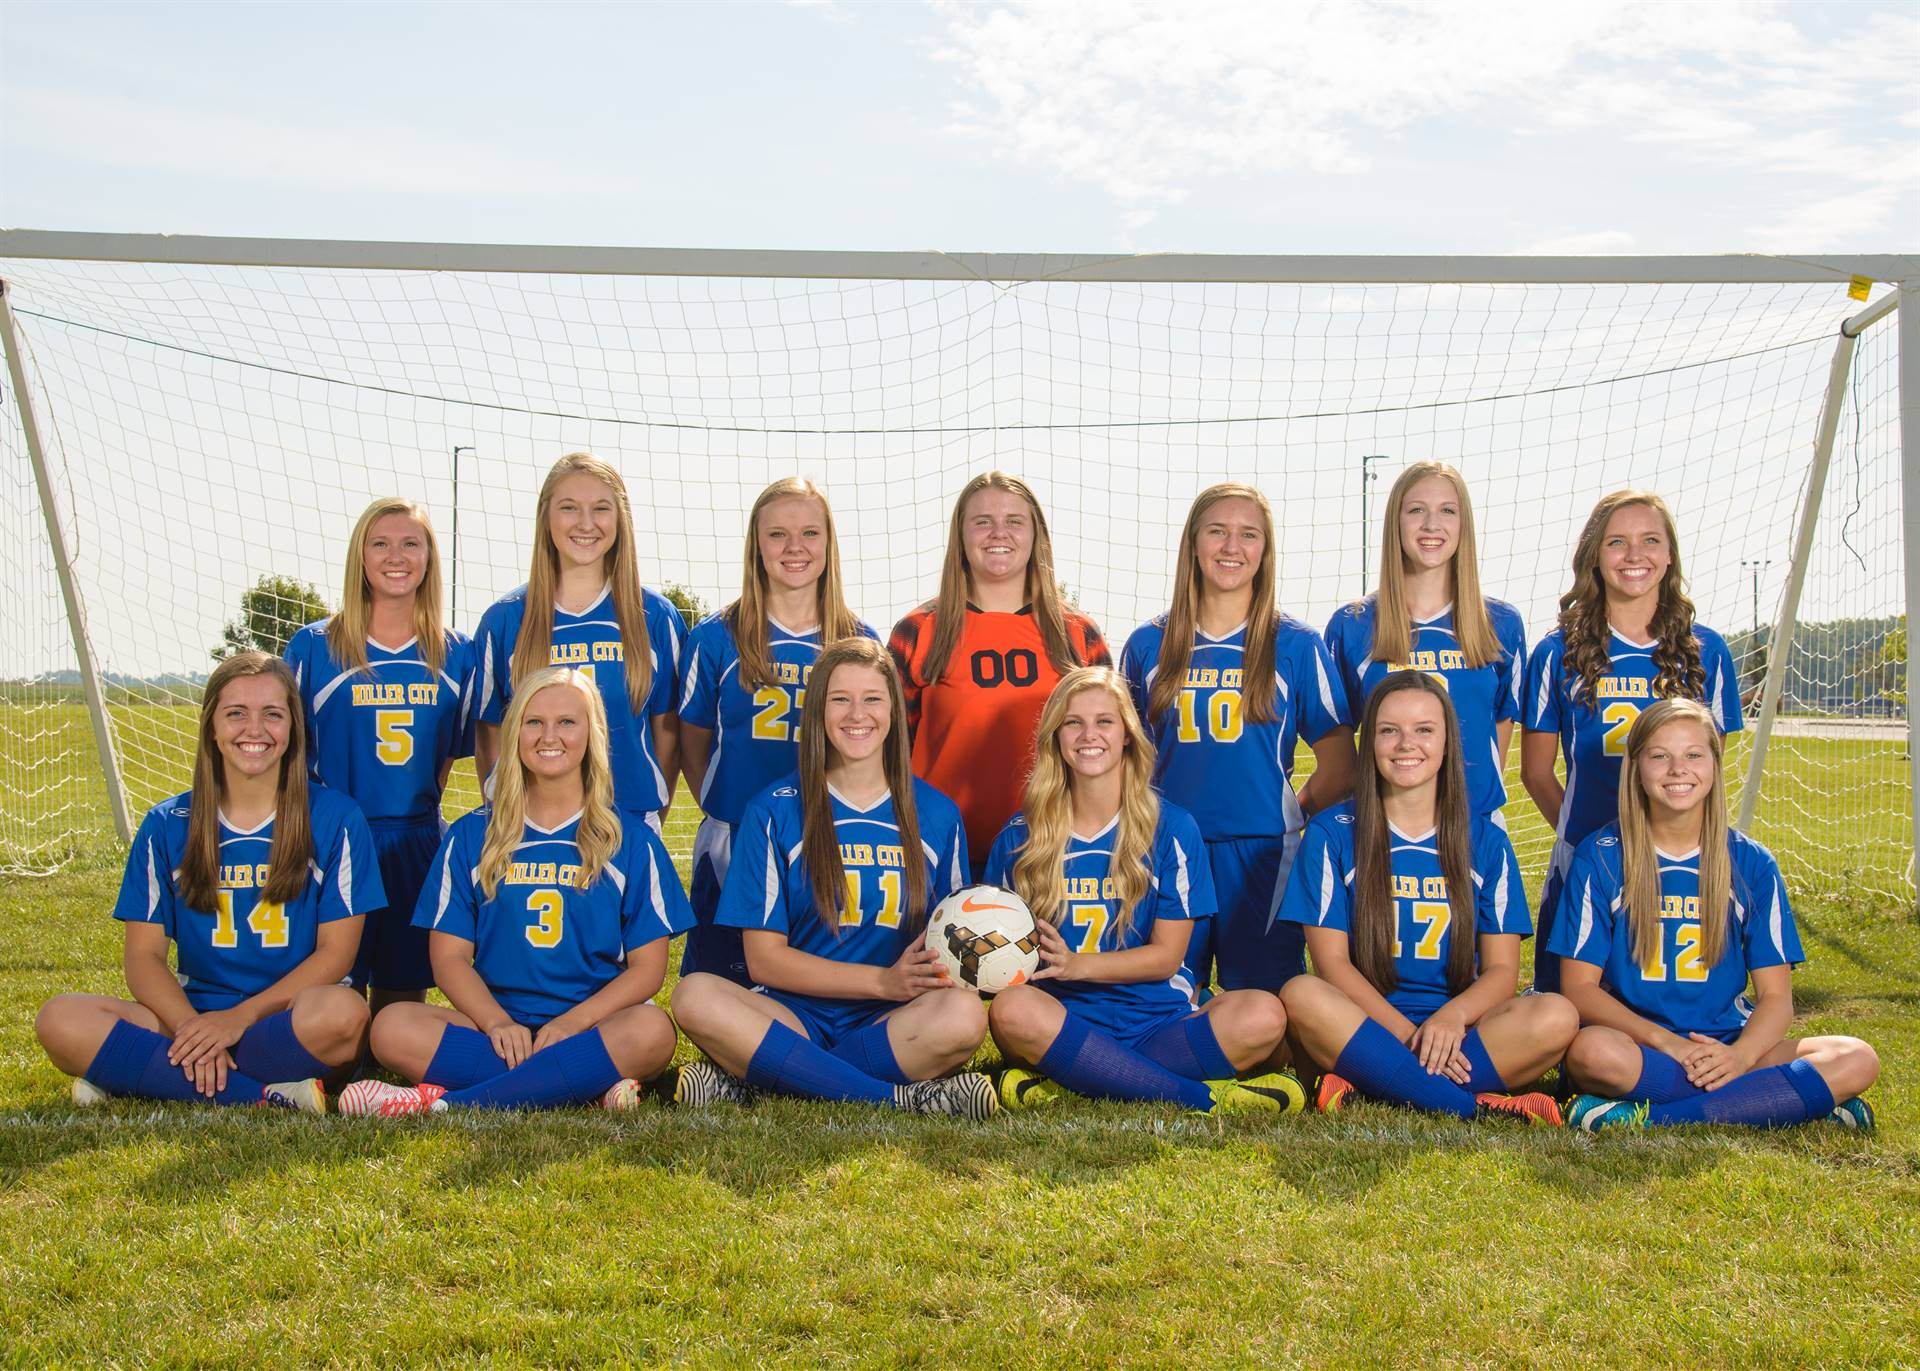 Girls Team Soccer Photo